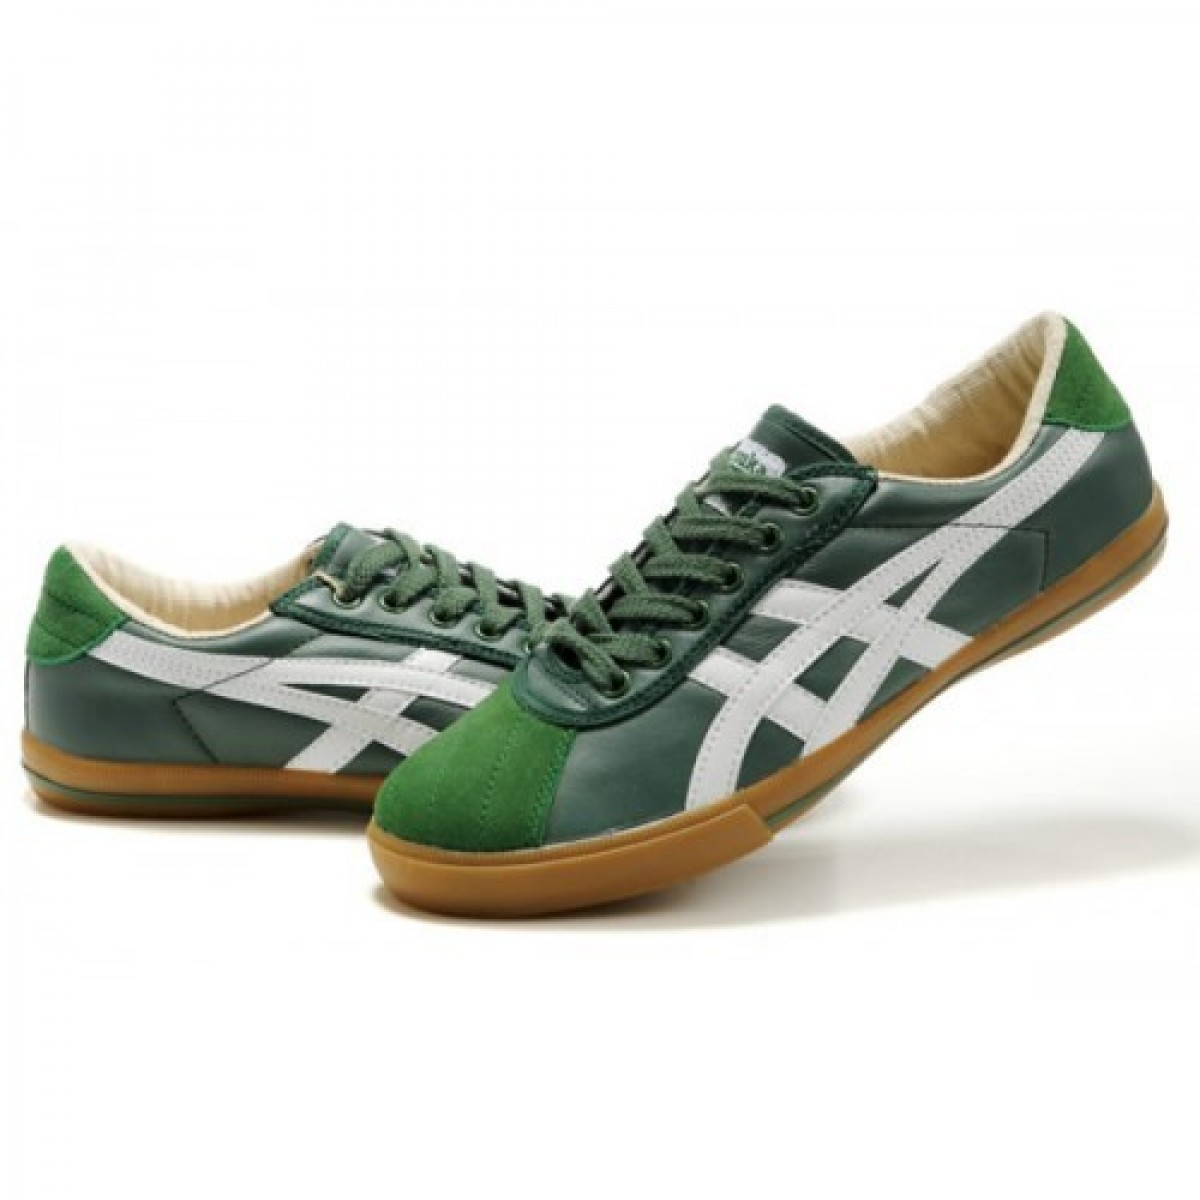 FI4503 Soldes Asics Onitsuka Tiger Rotation 77 Chaussures Vert Blanc 44454380 Pas Cher